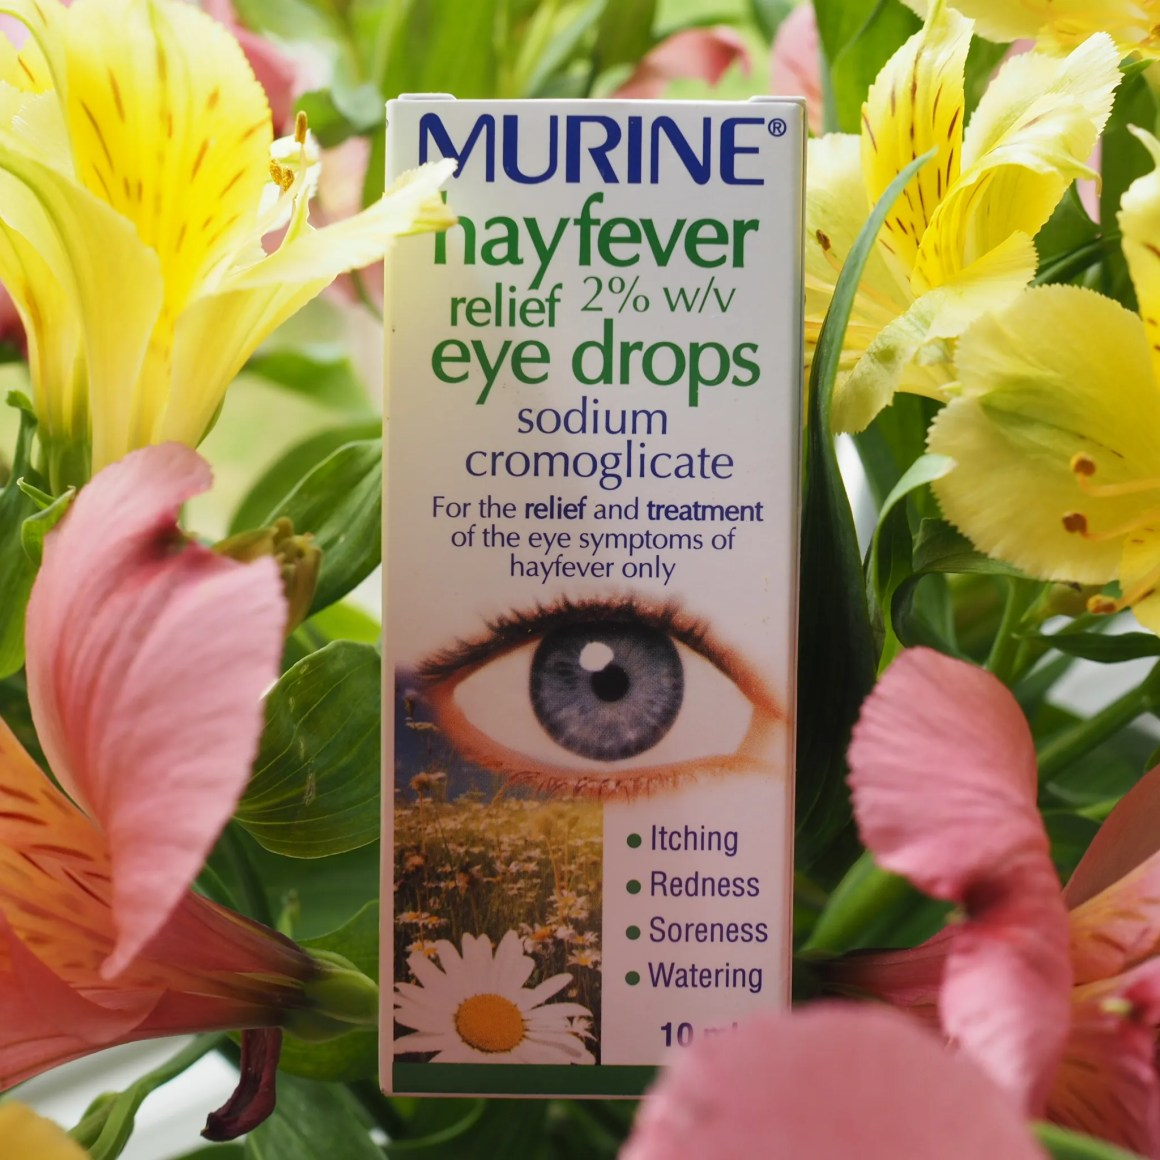 Eyedrops for itchy hay fever eyes